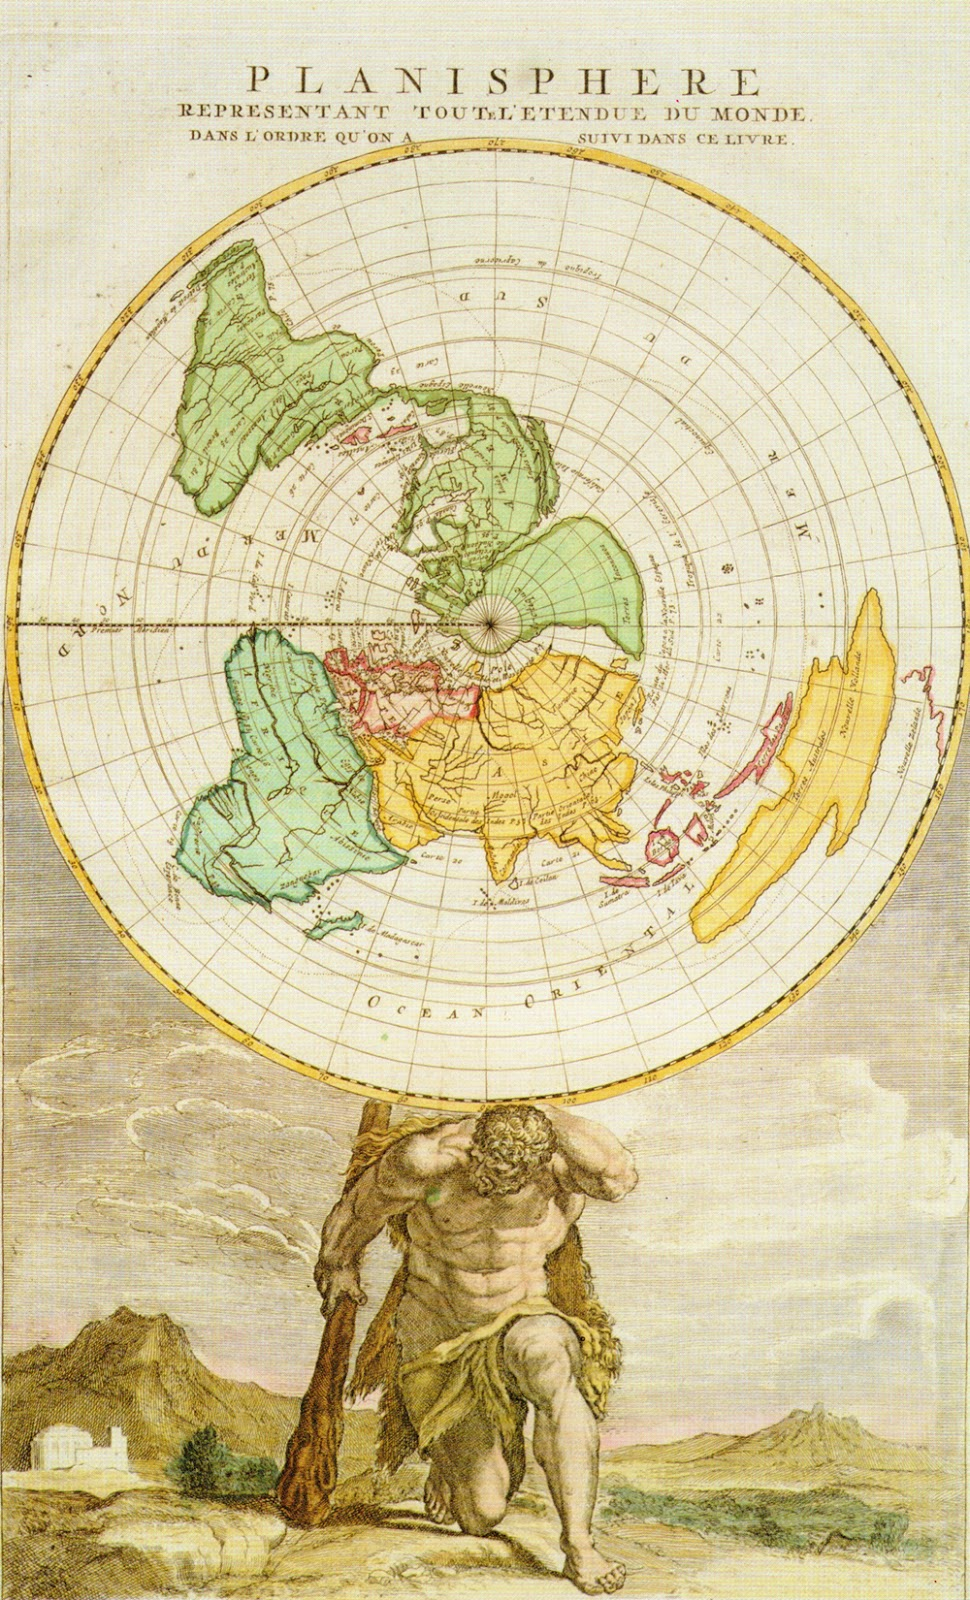 Birkhalls miscellany flat earth the history of the ball part vii the following map was created by johannes ruysch and again shows a disc shaped earth once again though i dont think it was the intention of the mapmaker gumiabroncs Choice Image